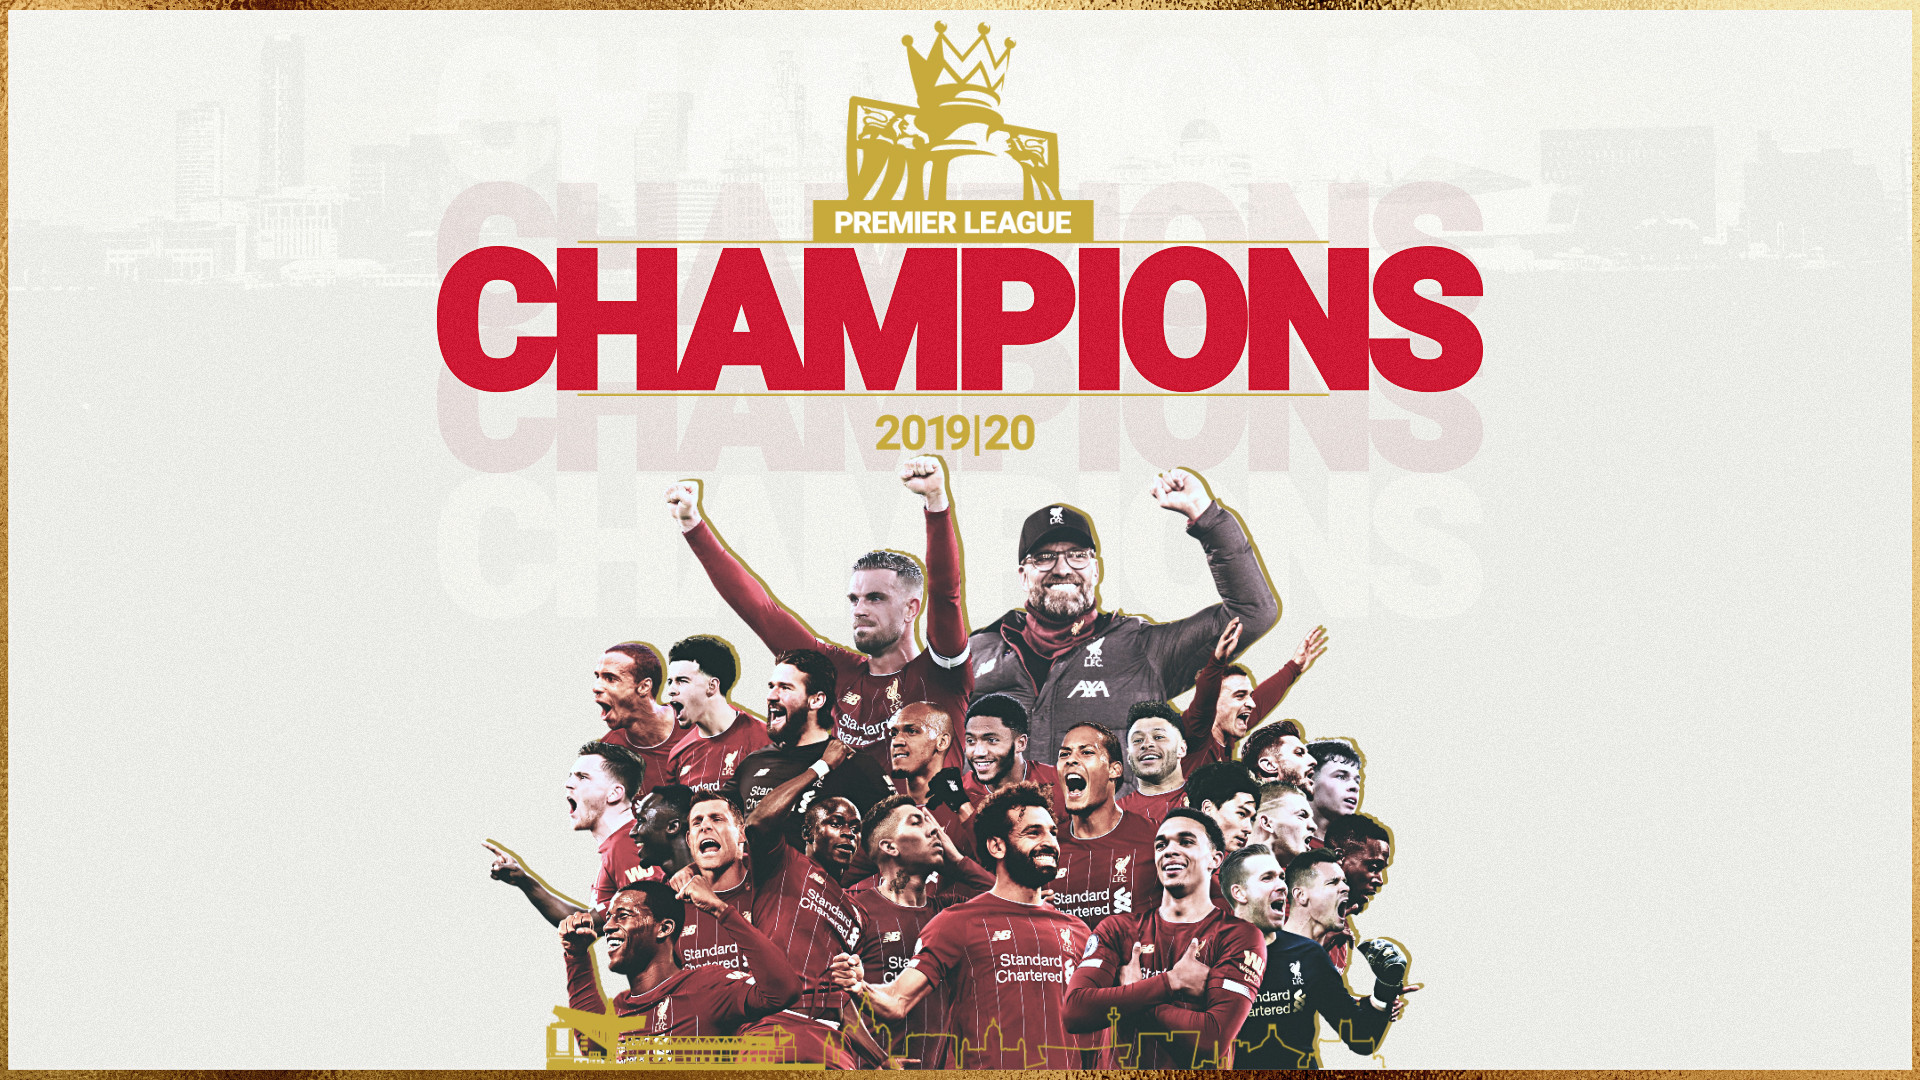 LIVERPOOL ARE CHAMPIONS OF THE ENGLISH PREMIER LEAGUE